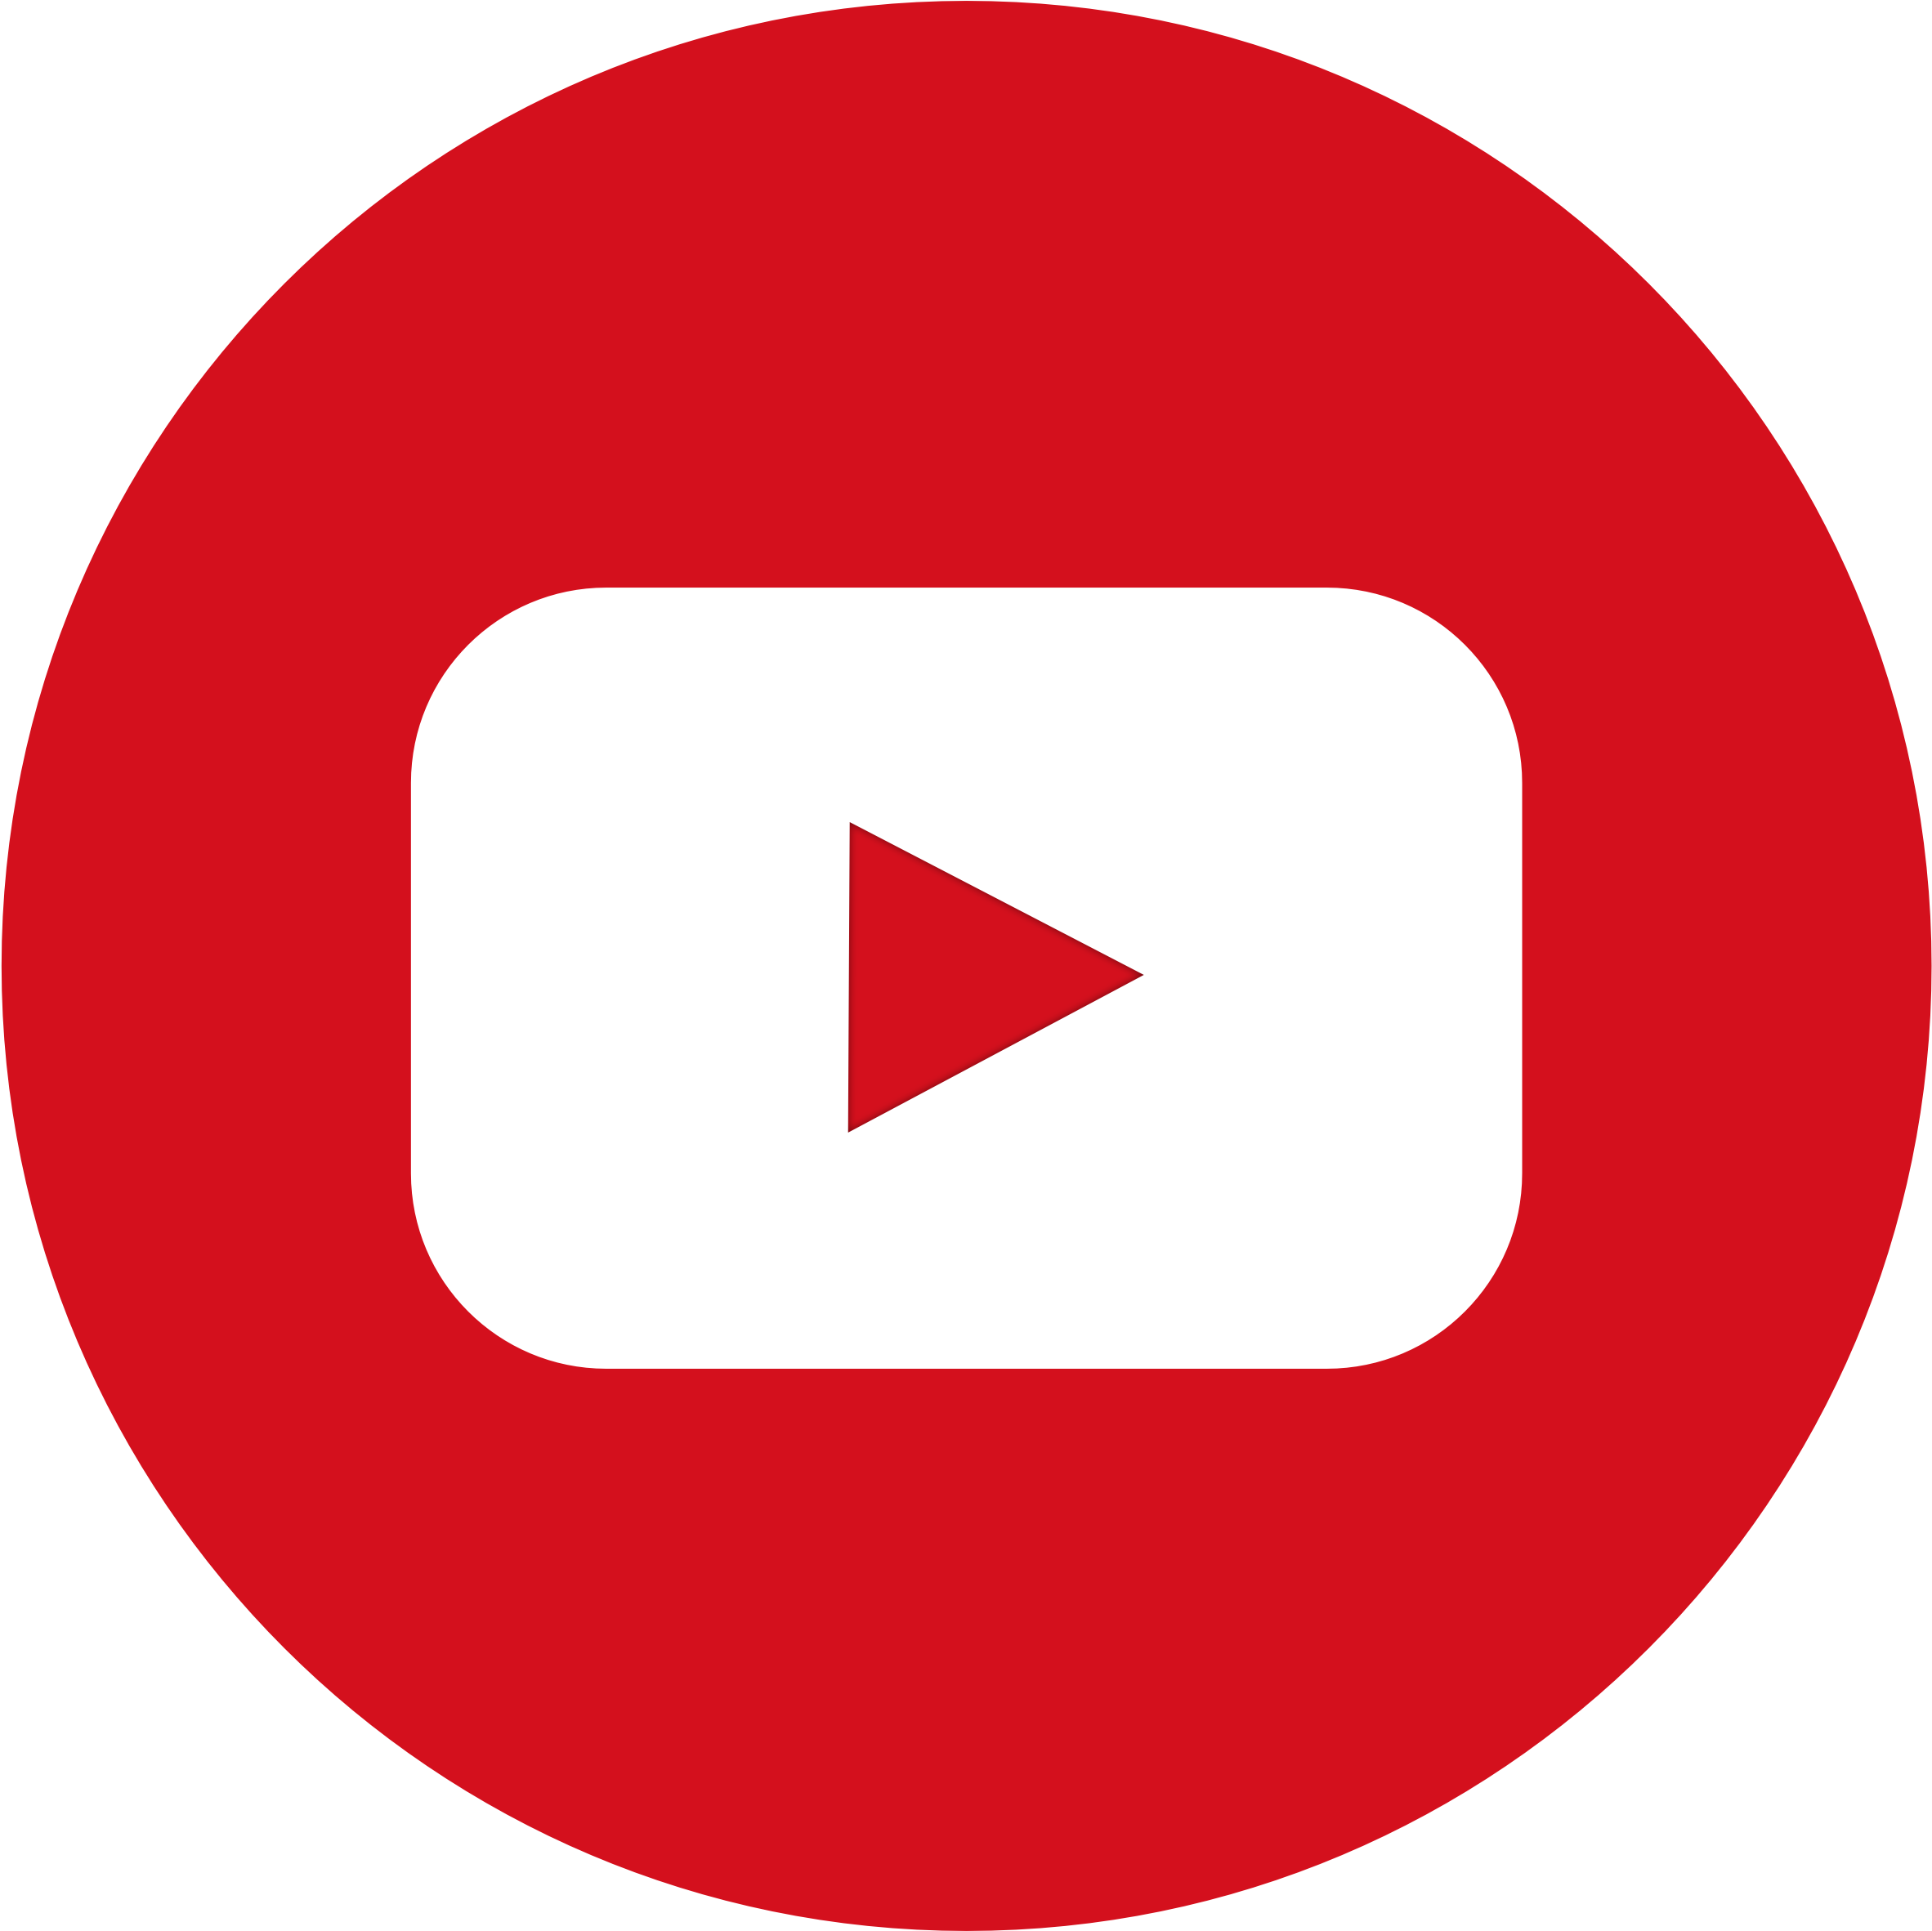 YouTube Pro - No Ads v2.2.0.7 (YouTube Lite) + (ARABIC VERSION) (8.2 MB)